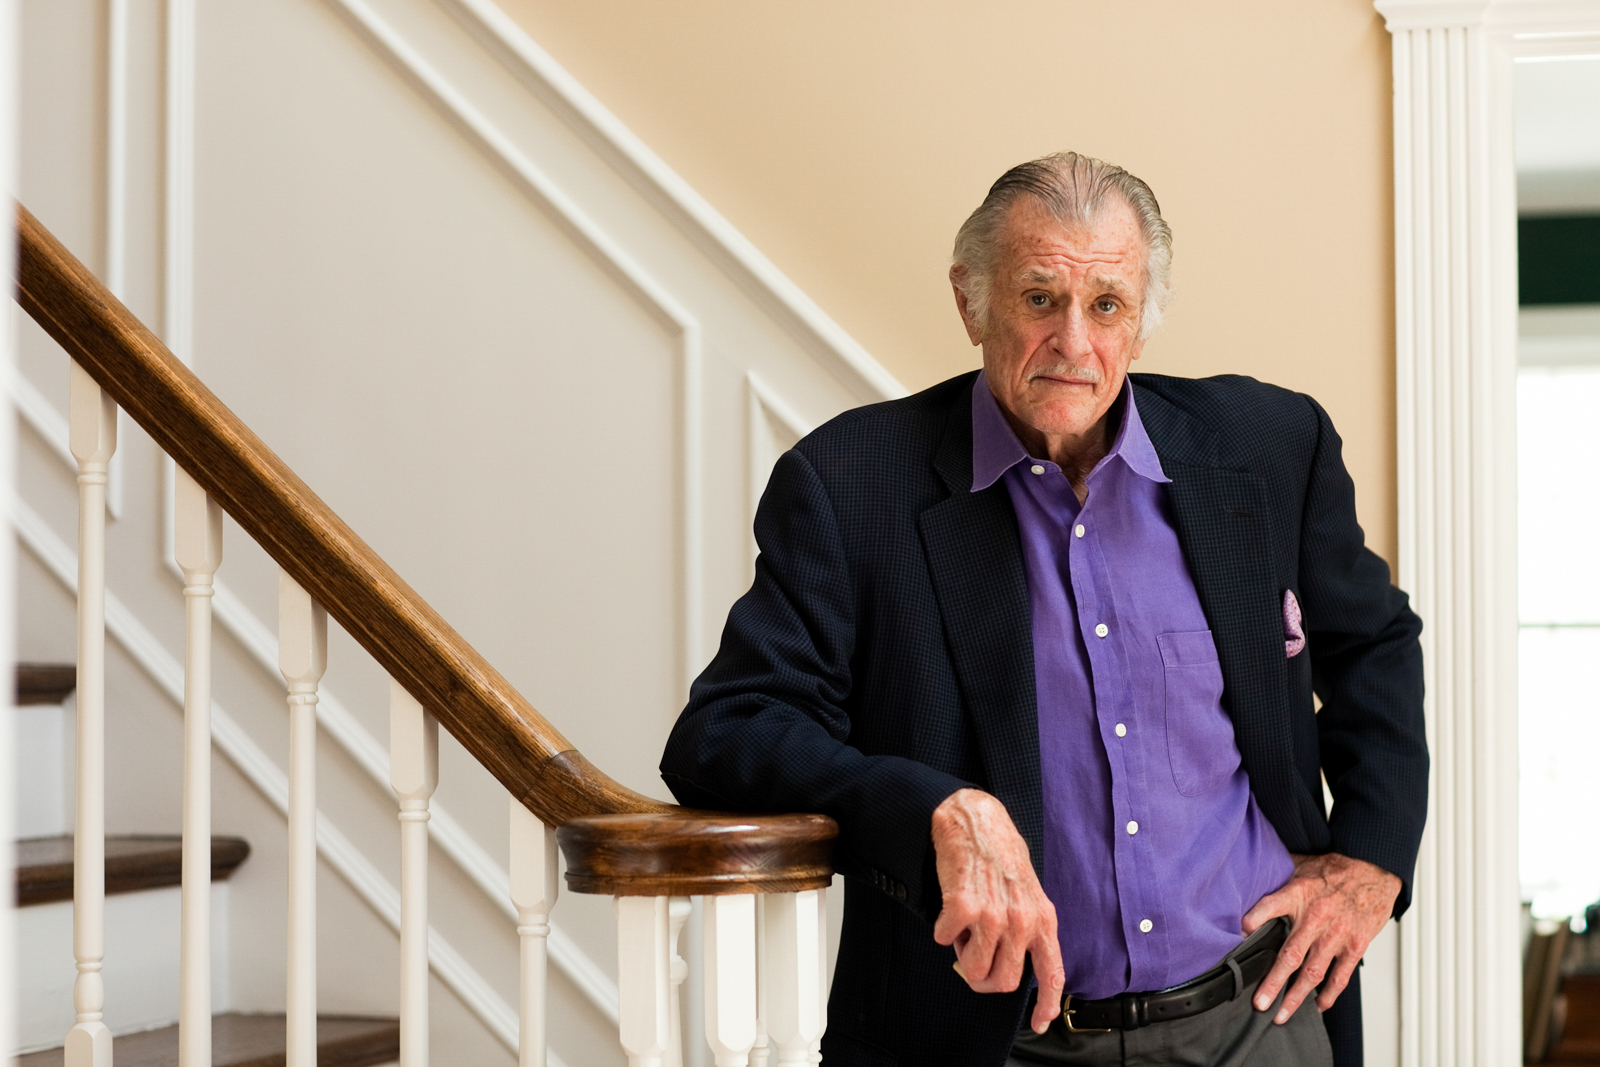 Frank Deford for Moffly Media